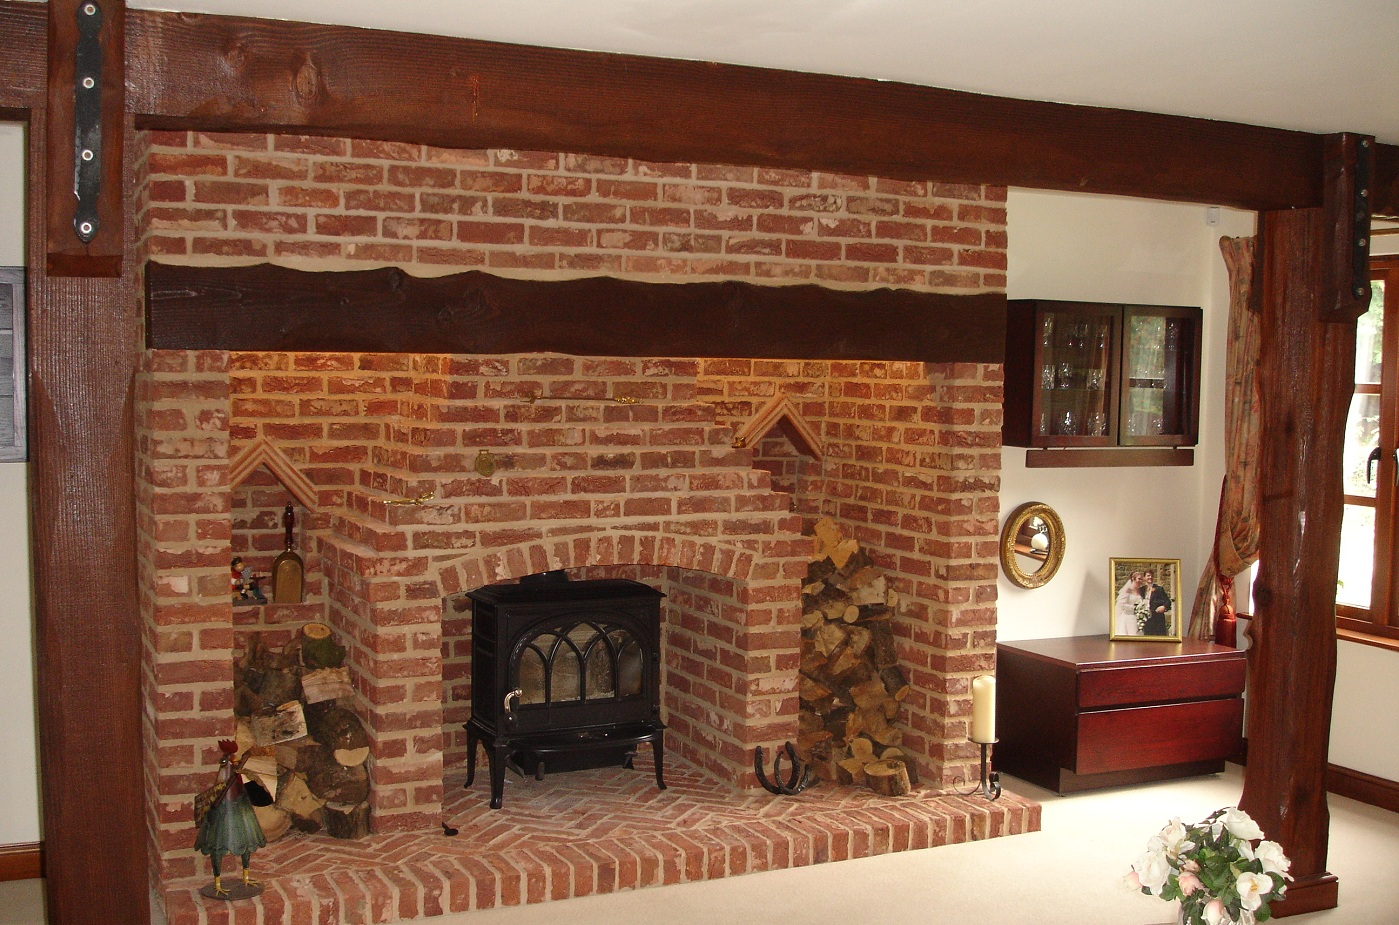 Nothing has the appeal of brick when it comes to fireplaces